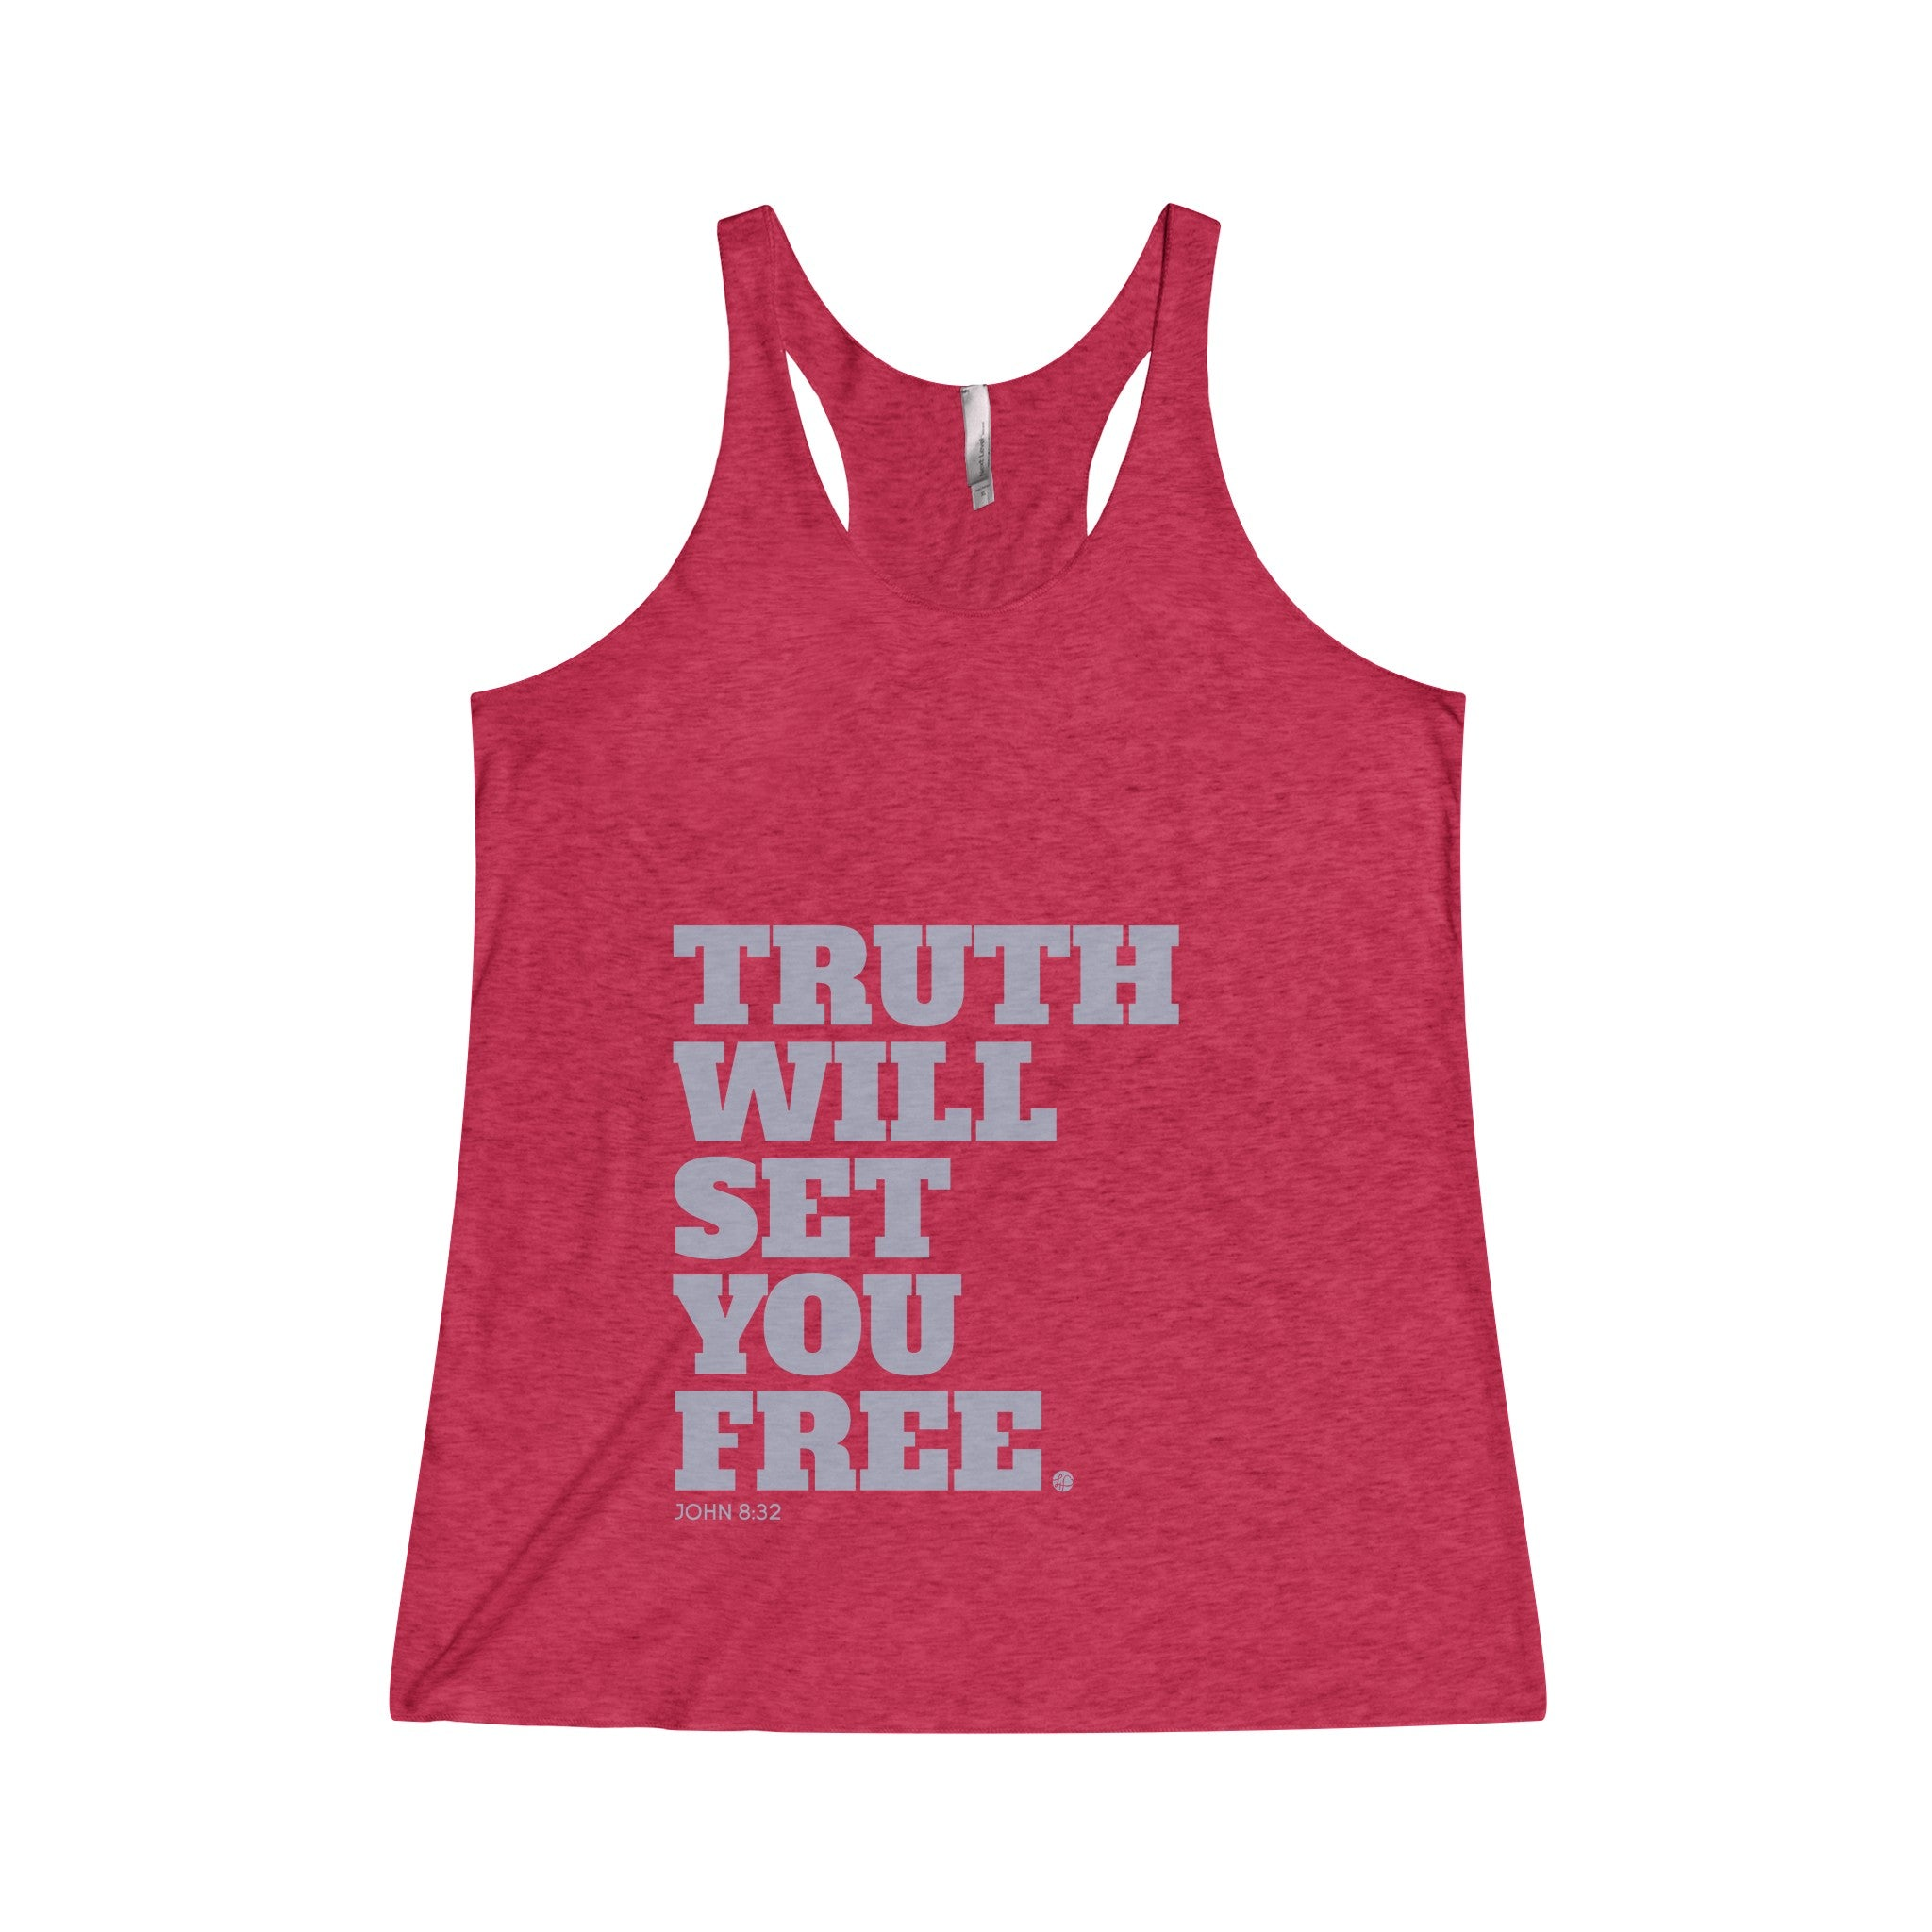 Truth Will Set You Free Women's Tri-Blend Racerback Tank